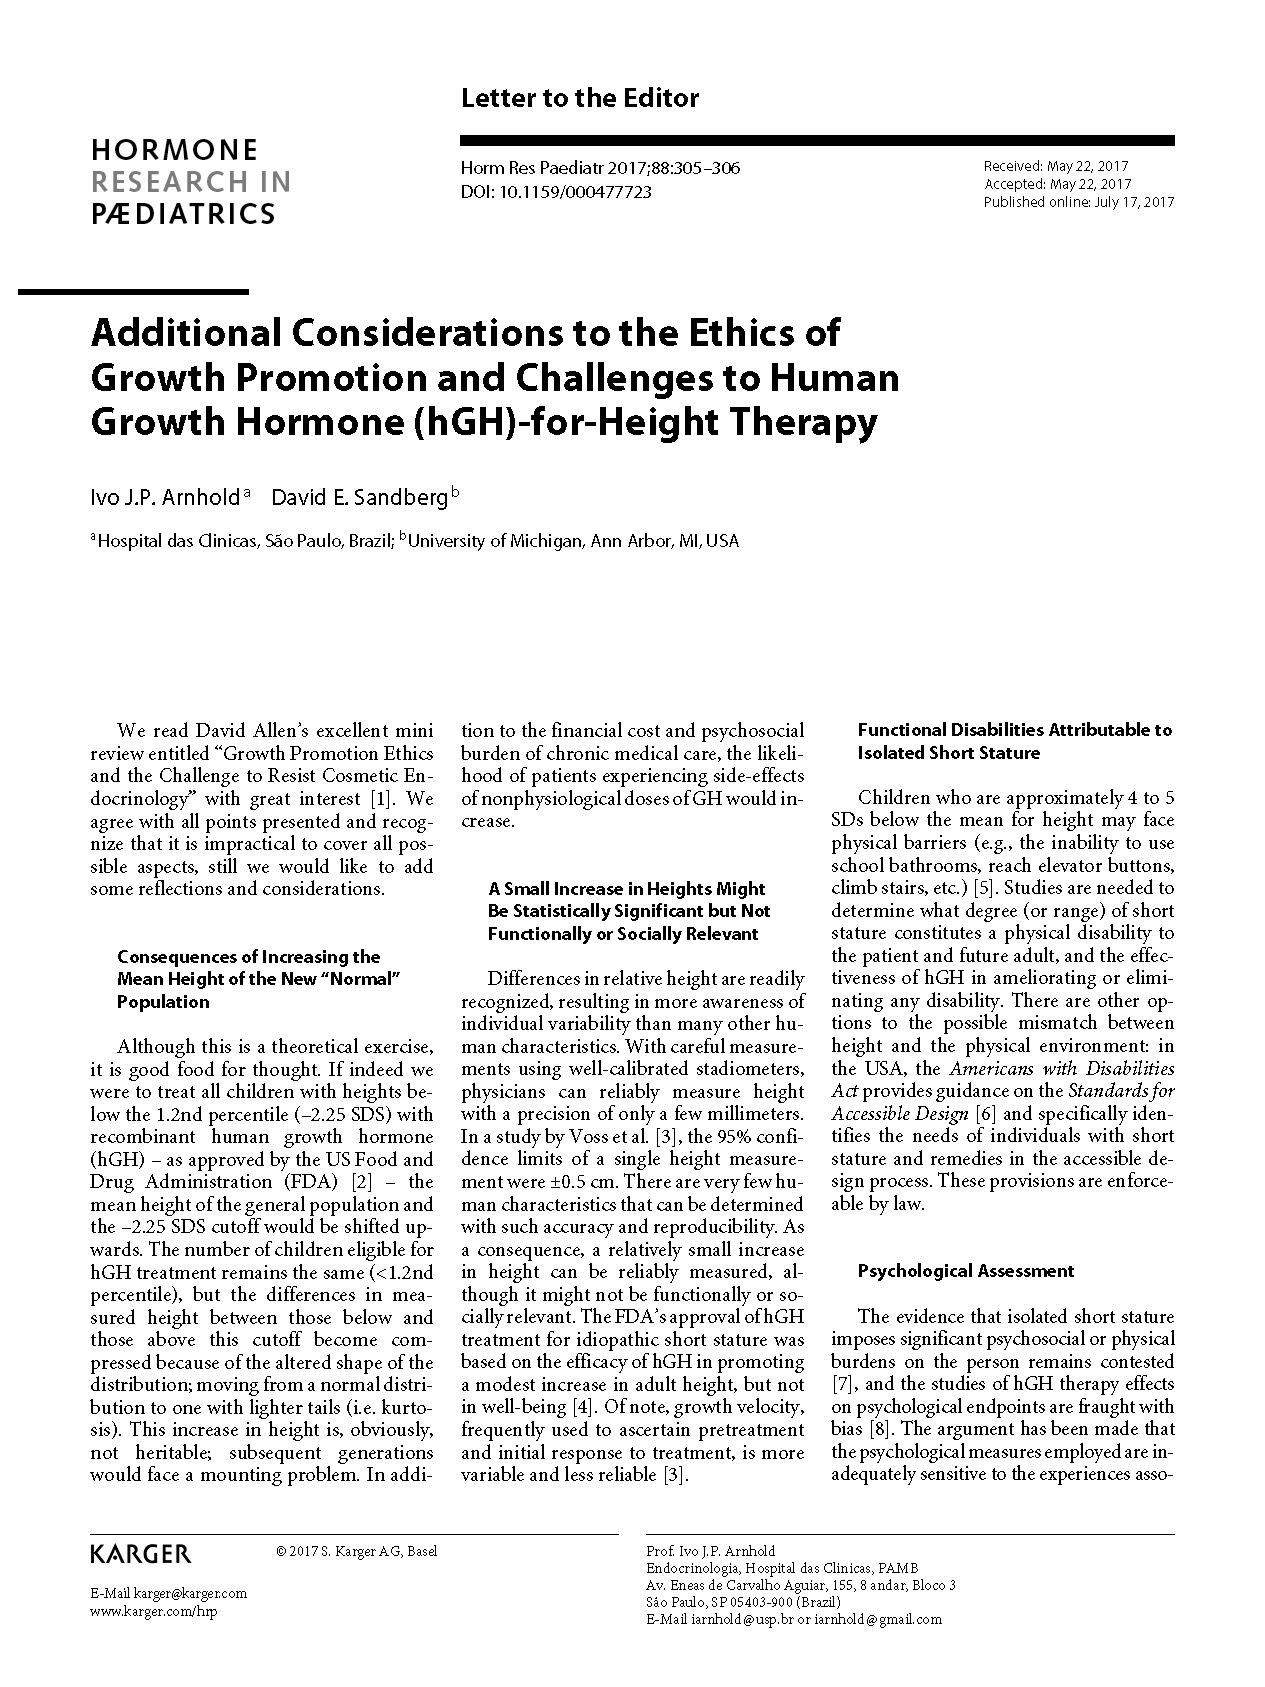 Additional Considerations to the Ethics of Growth Promotion and Challenges to Human Growth Hormone (hGH)-for-Height Therapy